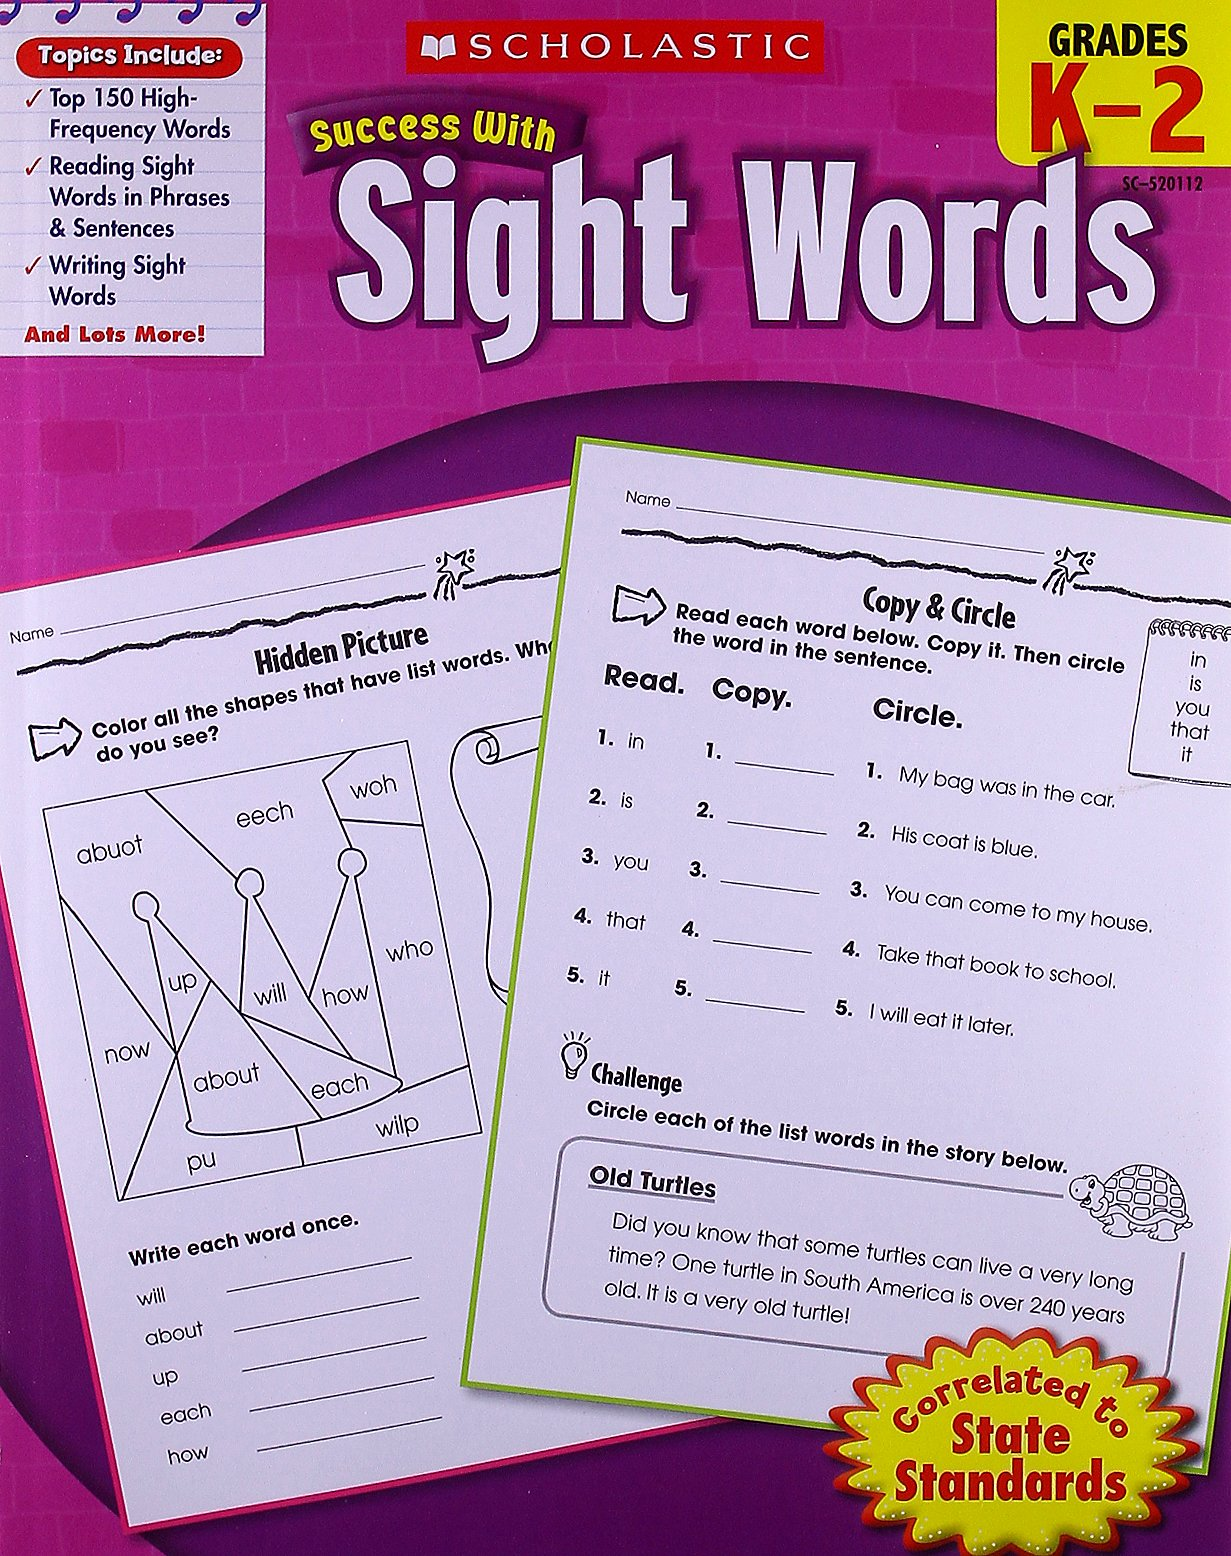 Scholastic Success with Sight Words Paperback – March 1, 2010